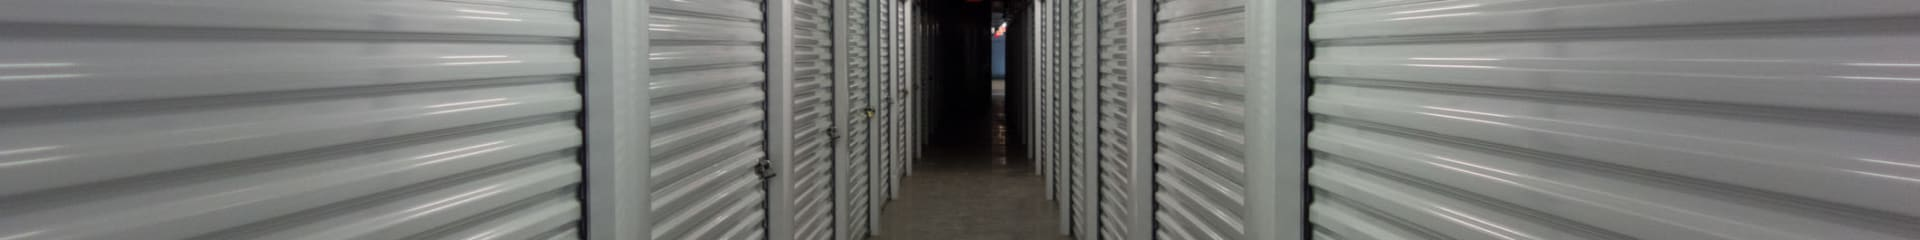 Storage units at D Street Storage in Salem, Oregon